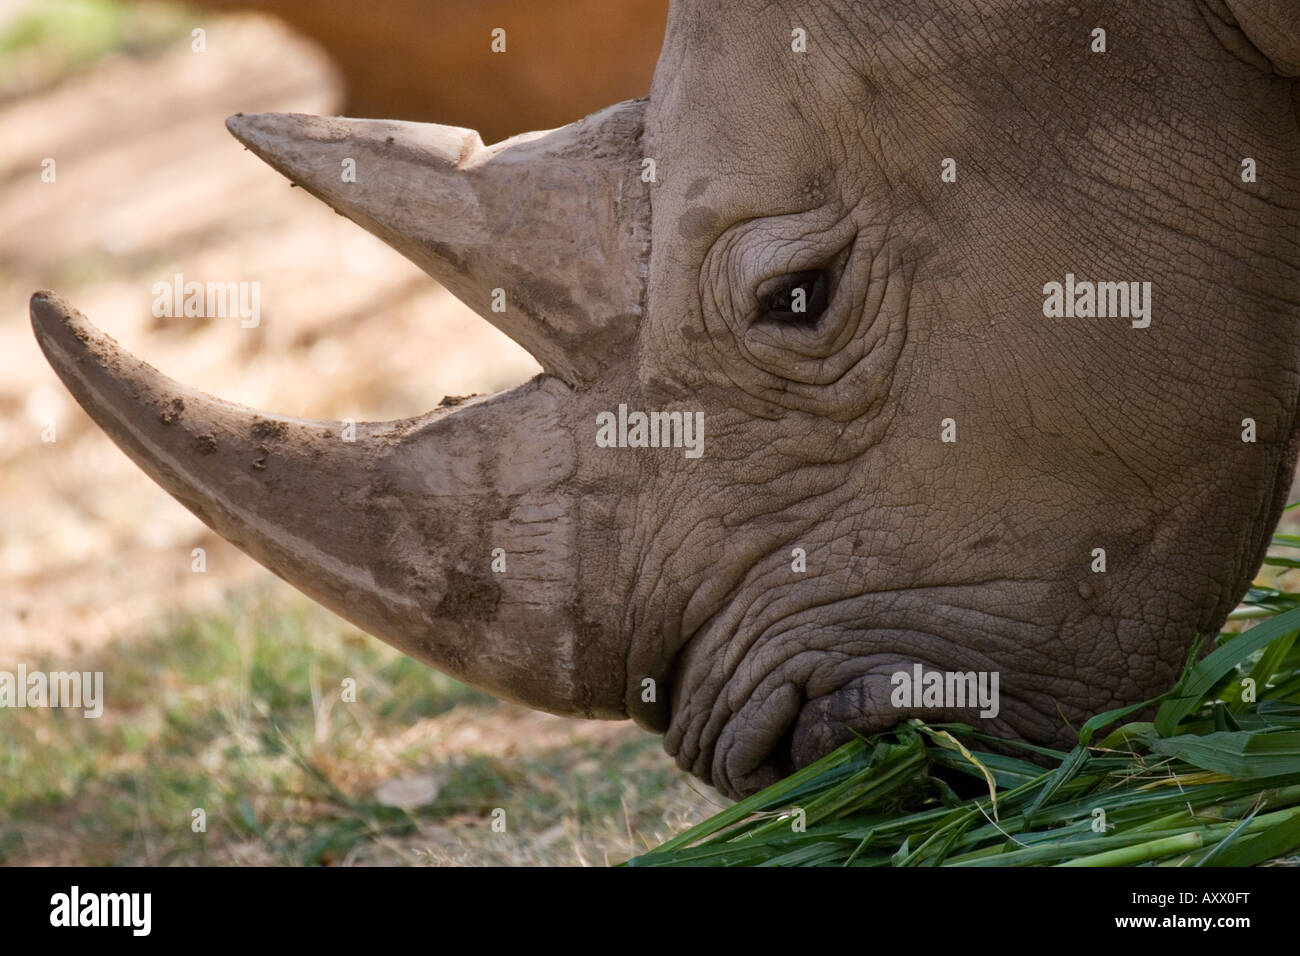 A white rhinoceros eats. This image was photographed in Mysore Zoo not in the wild - Stock Image